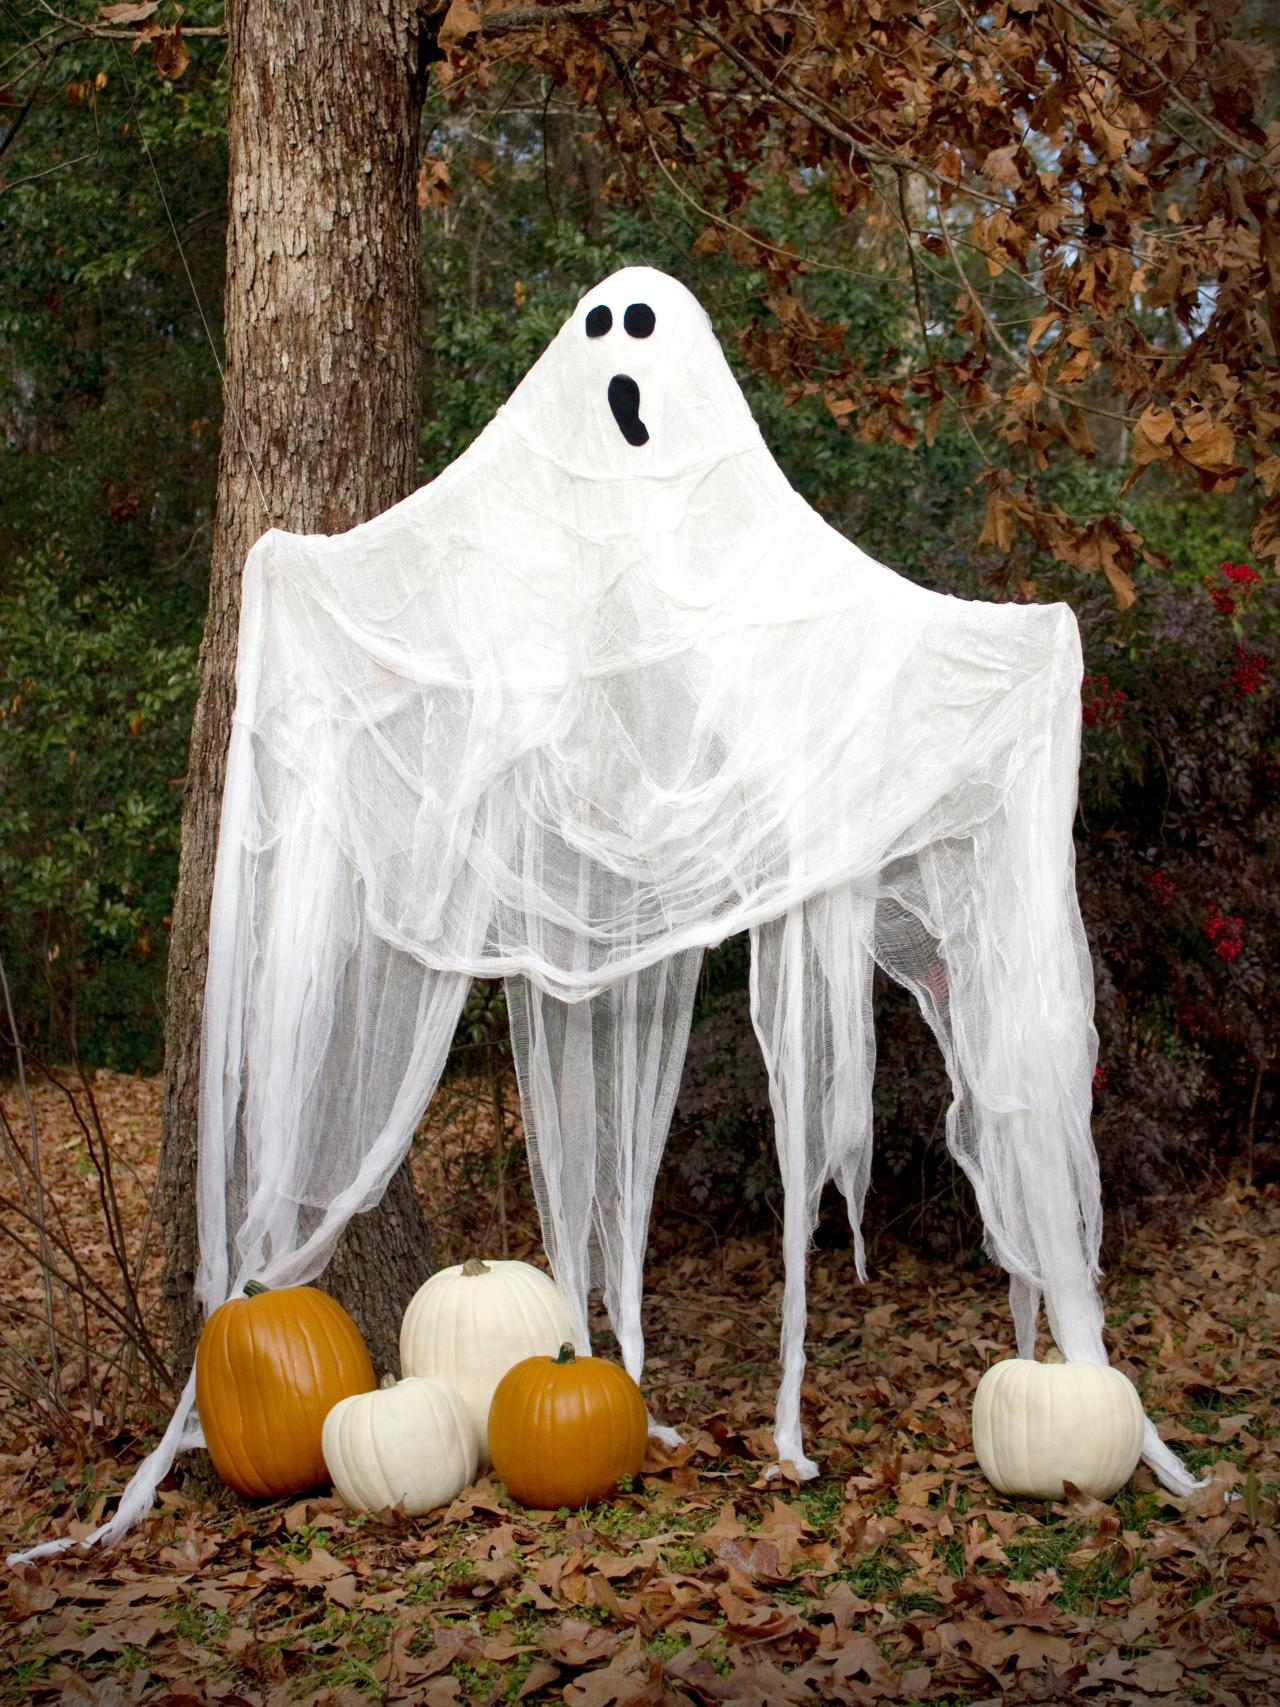 Scary halloween decorations ideas - Halloween Decorations Ghosts